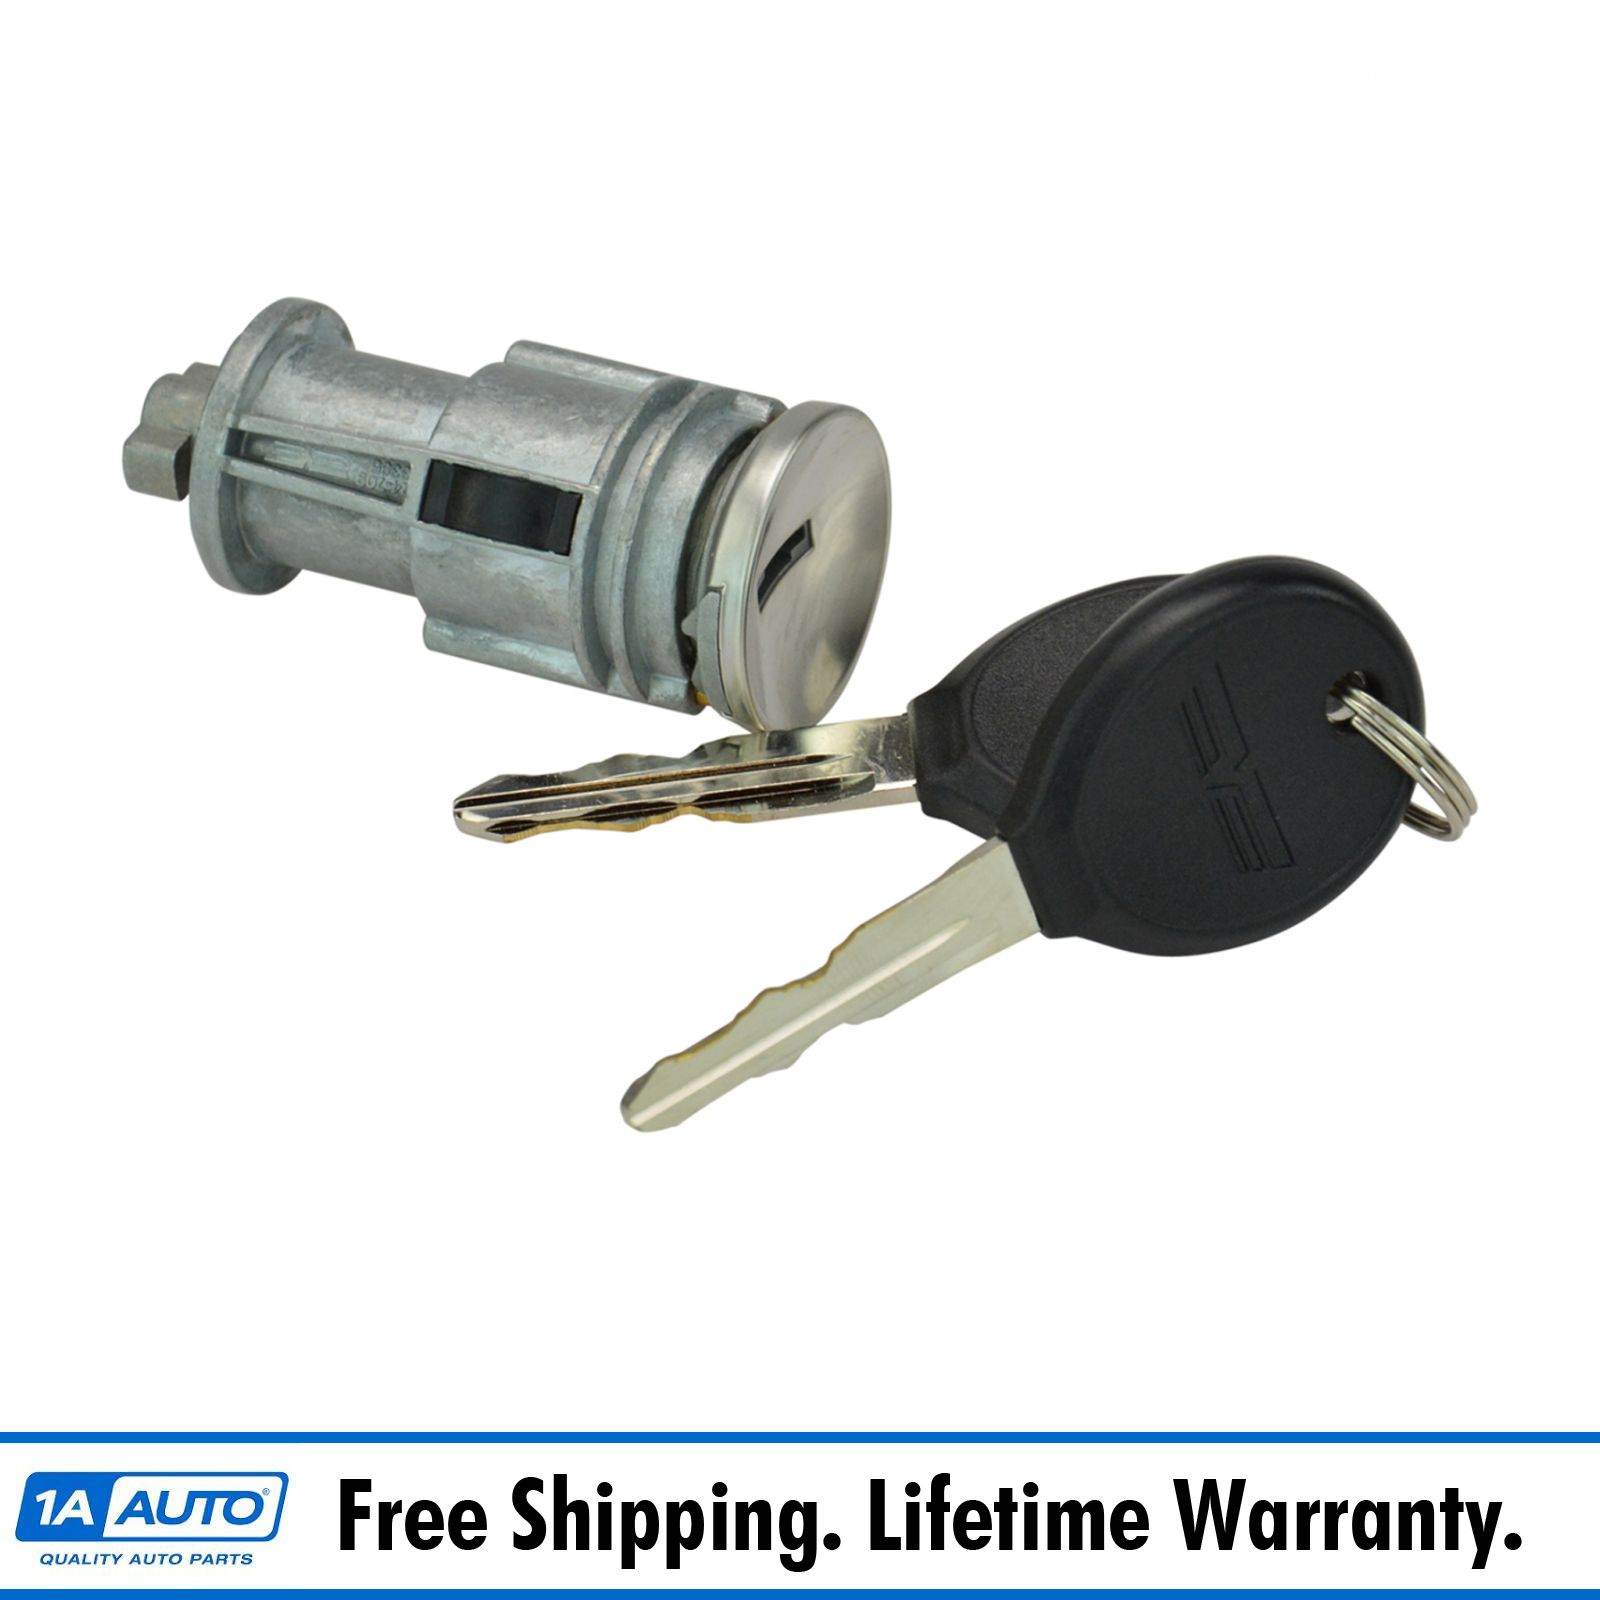 Ignition Switch Cylinder W/ Keys For Dodge Durango Dakota